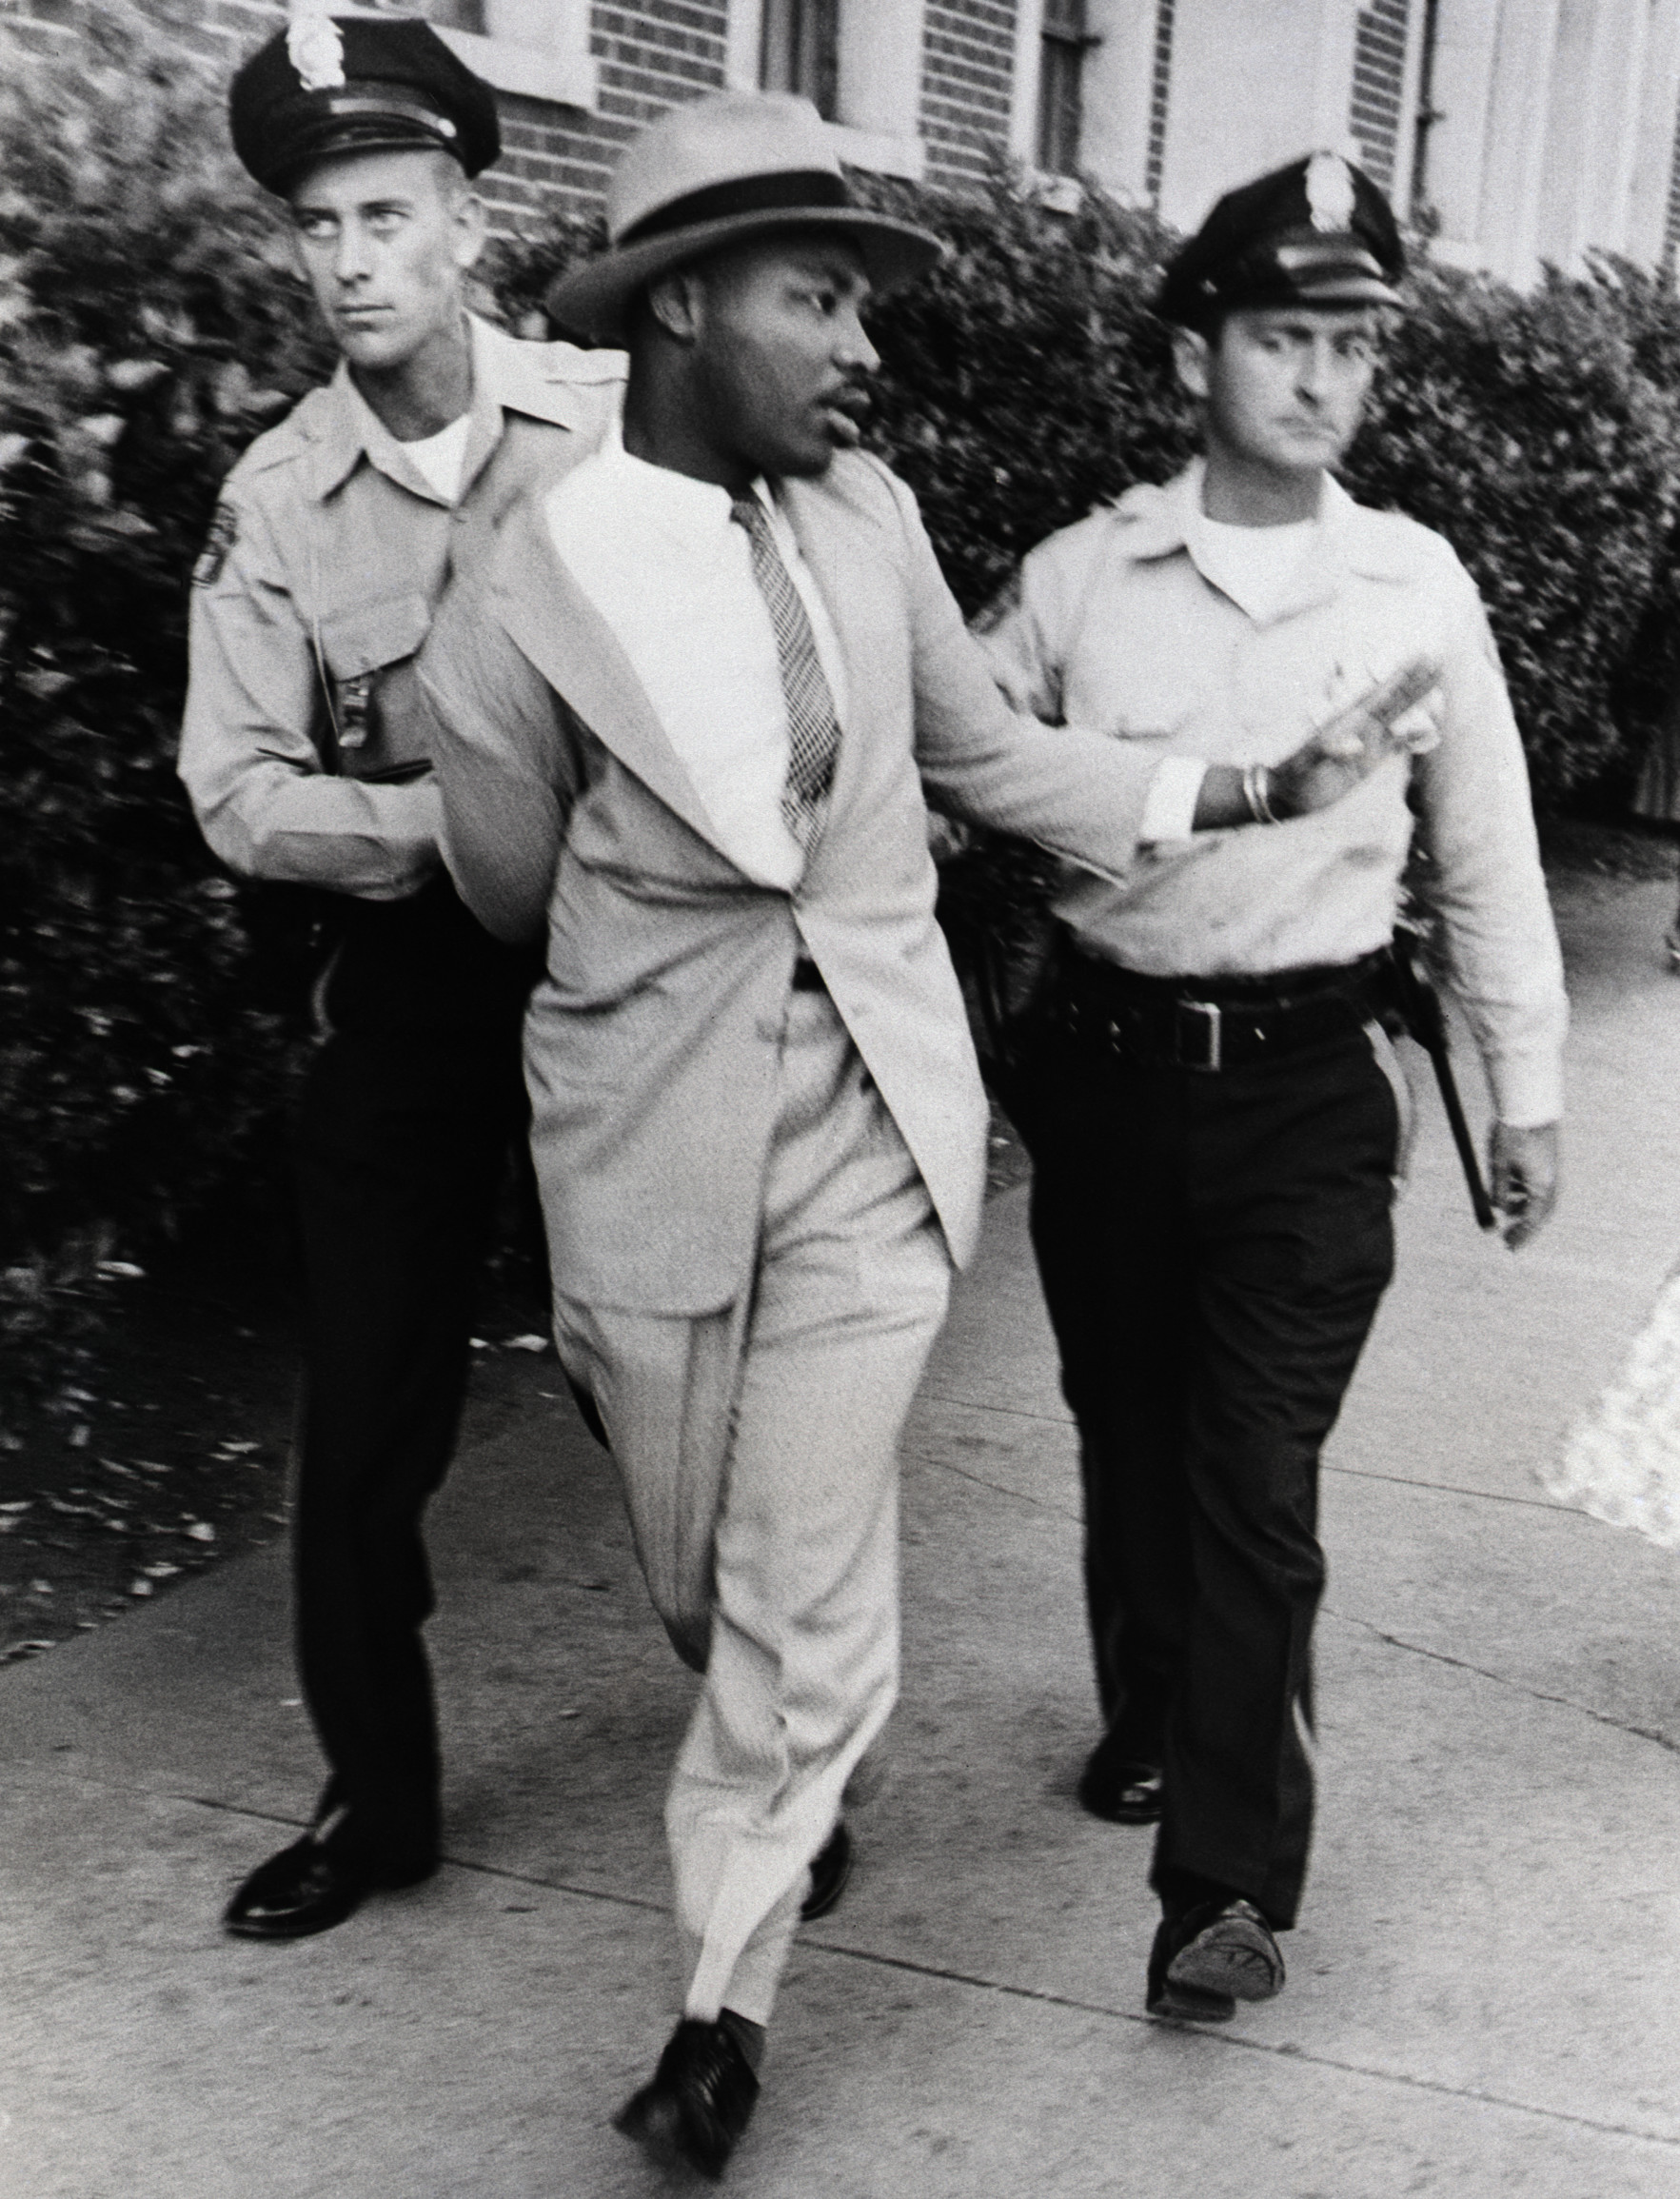 Martin Luther King, Jr. was a peacemaker